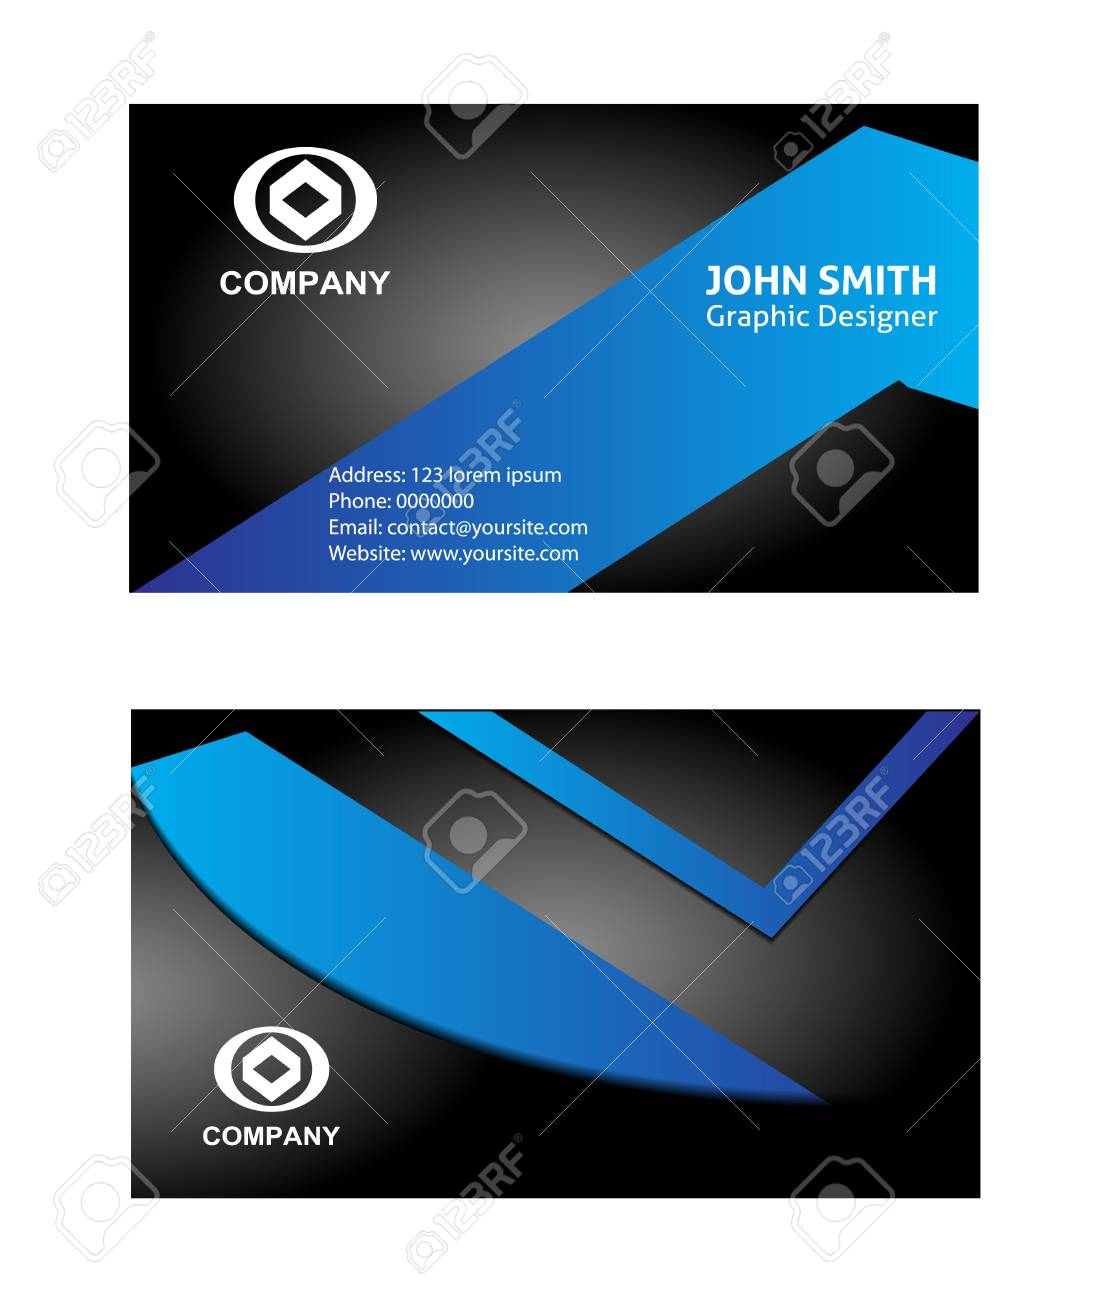 Free vectors for business cards vector and clip art inspiration vector business card royalty free cliparts vectors and stock rh 123rf com free vector architecture business reheart Image collections